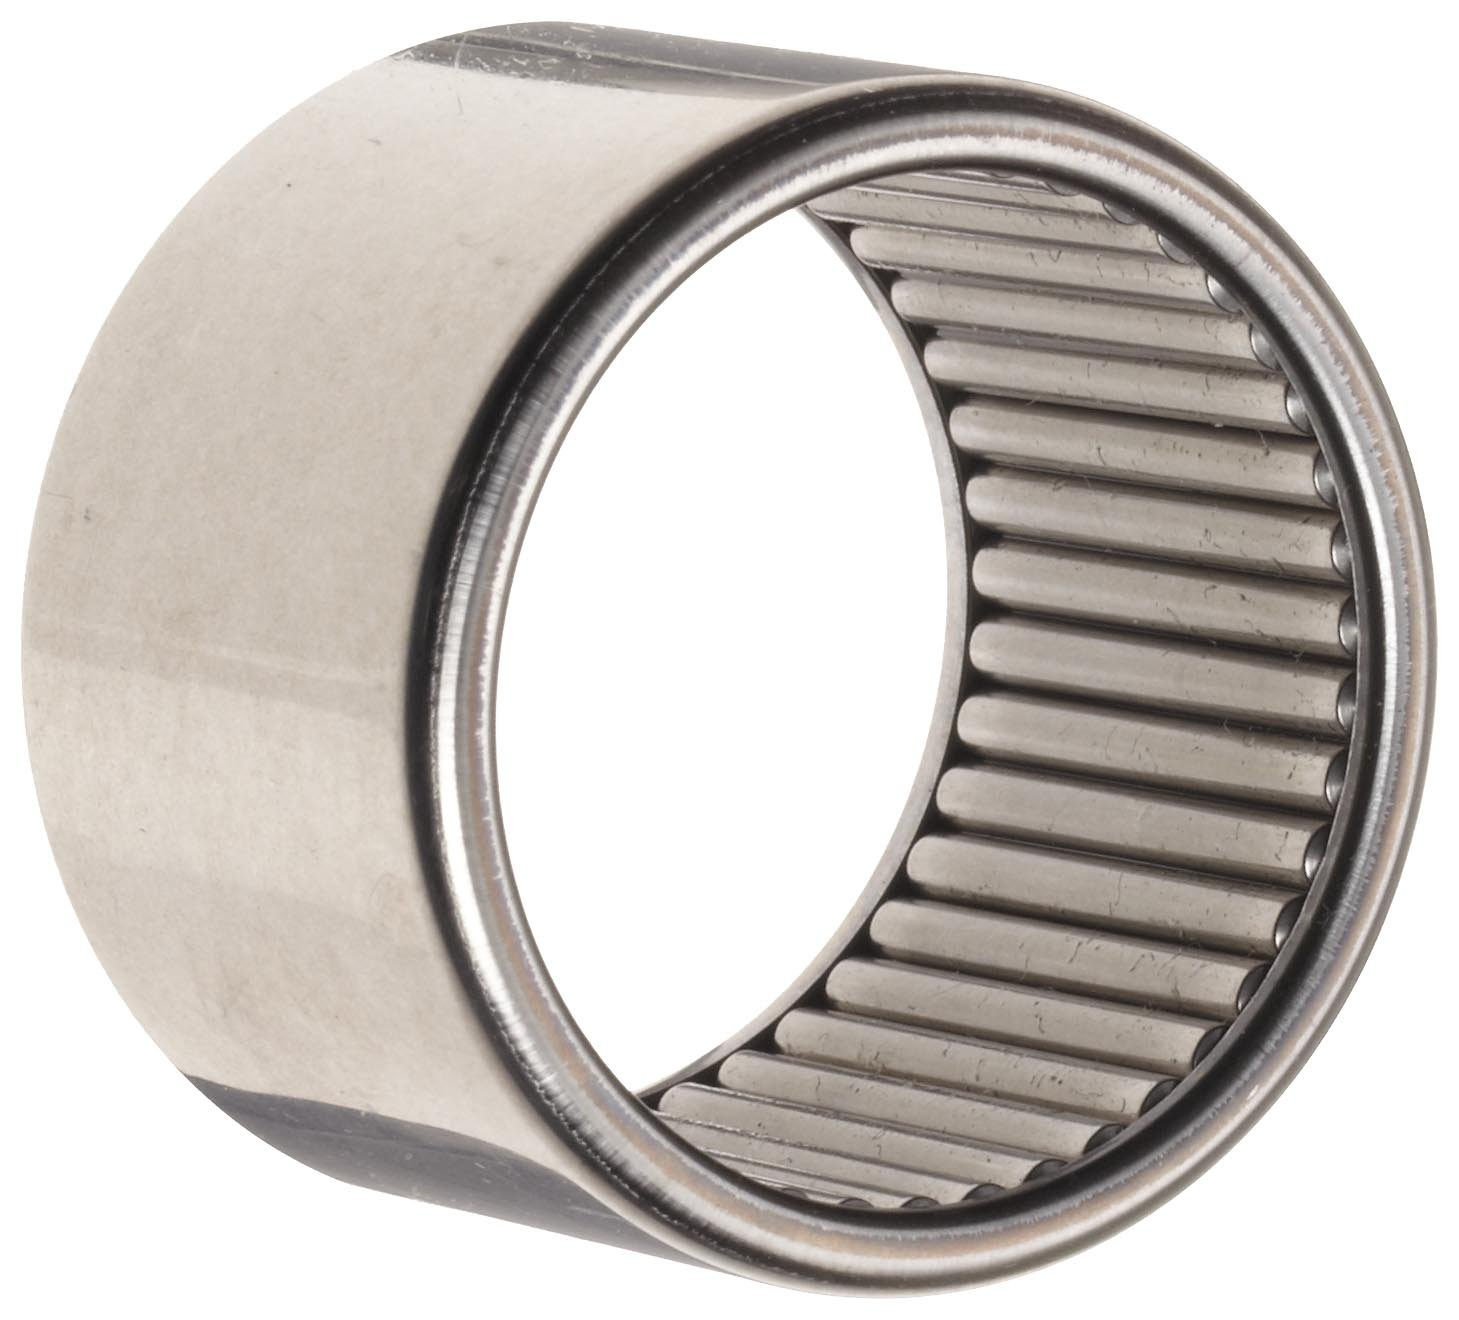 Koyo B-3216 Needle Roller Bearing, Full Complement Drawn Cup, Open, Inch, 2' ID, 2-3/8' OD, 1' Width, 3300rpm Maximum Rotational Speed 2 ID 2-3/8 OD 1 Width Koyo Torrington